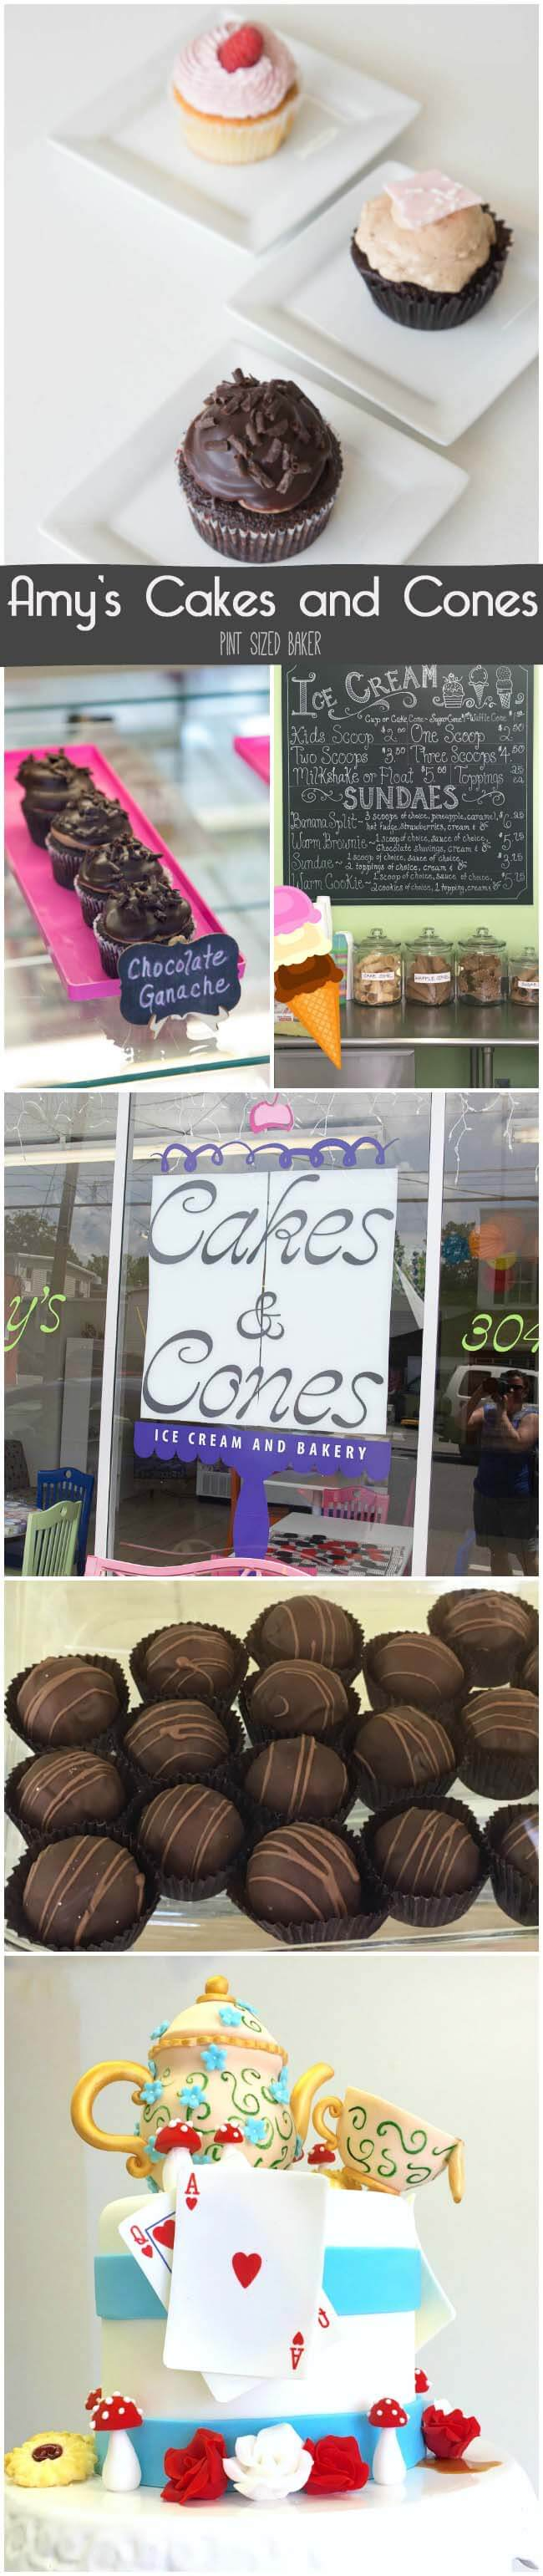 When in Greenbrier County, make a pit stop into Amy's Cakes and Cones on Lewisburg, WV.